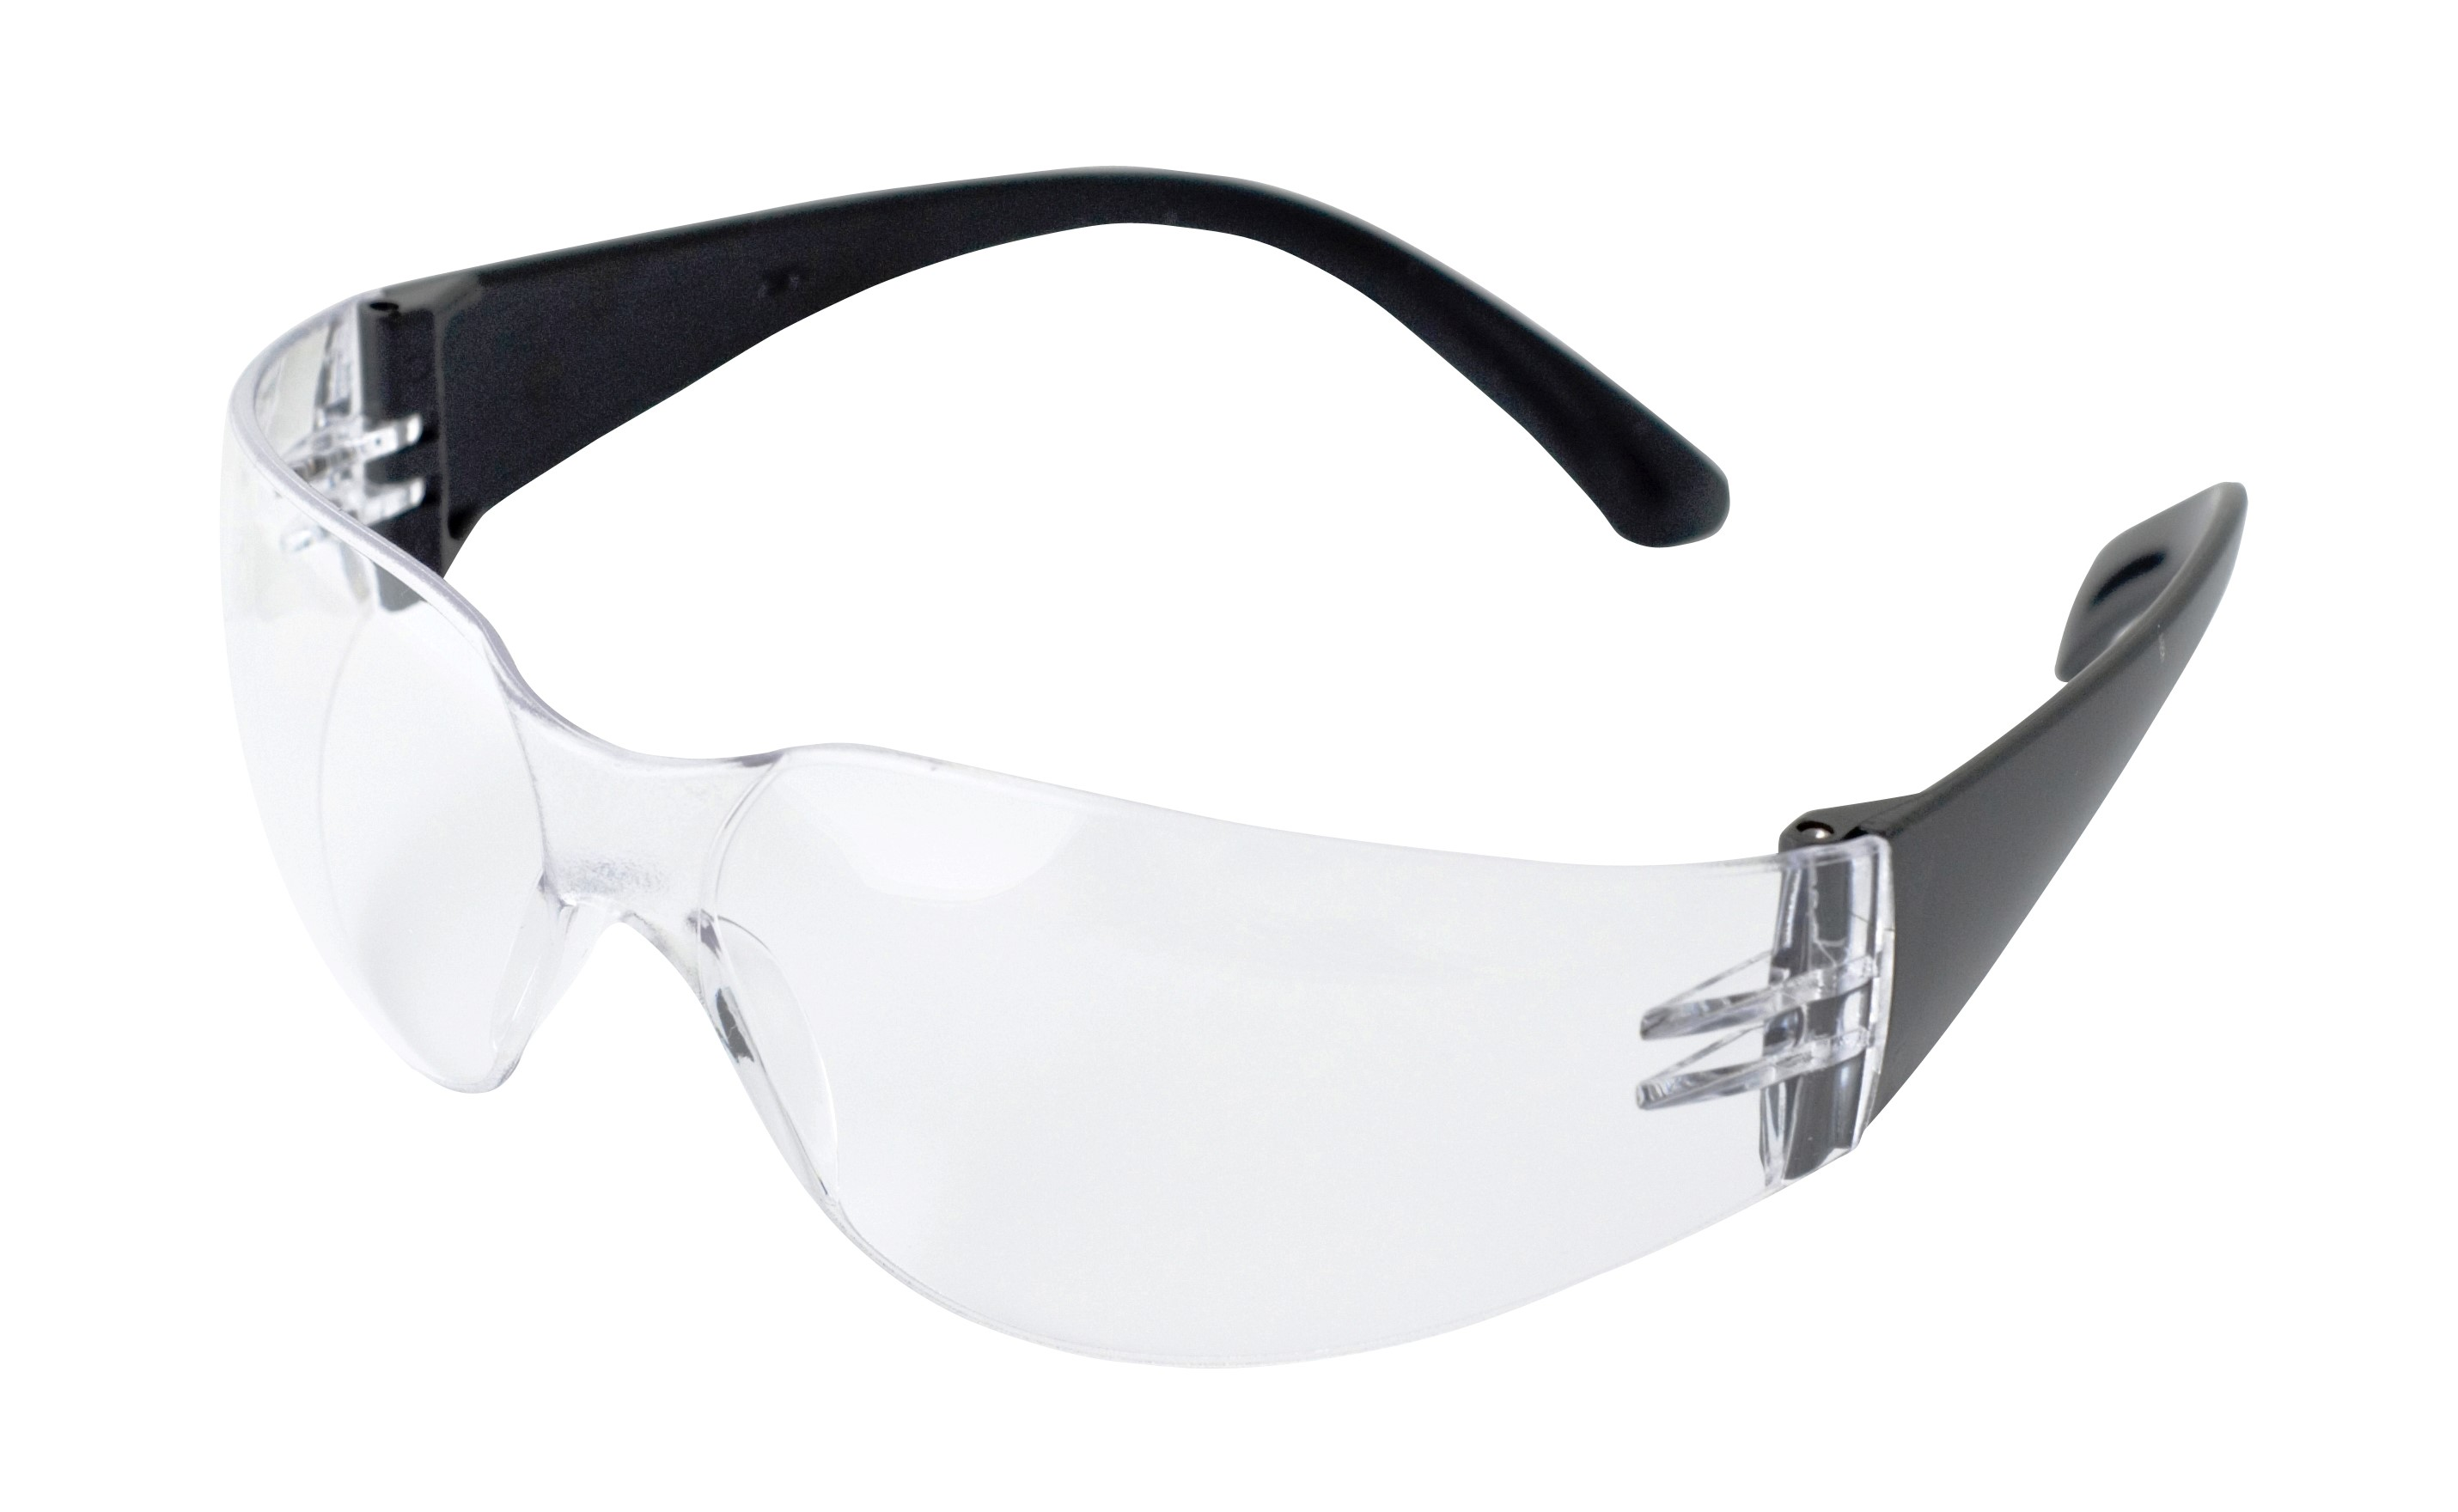 Betafit GENEVA Anti Scratch Lens Safety Spectacles - Clear